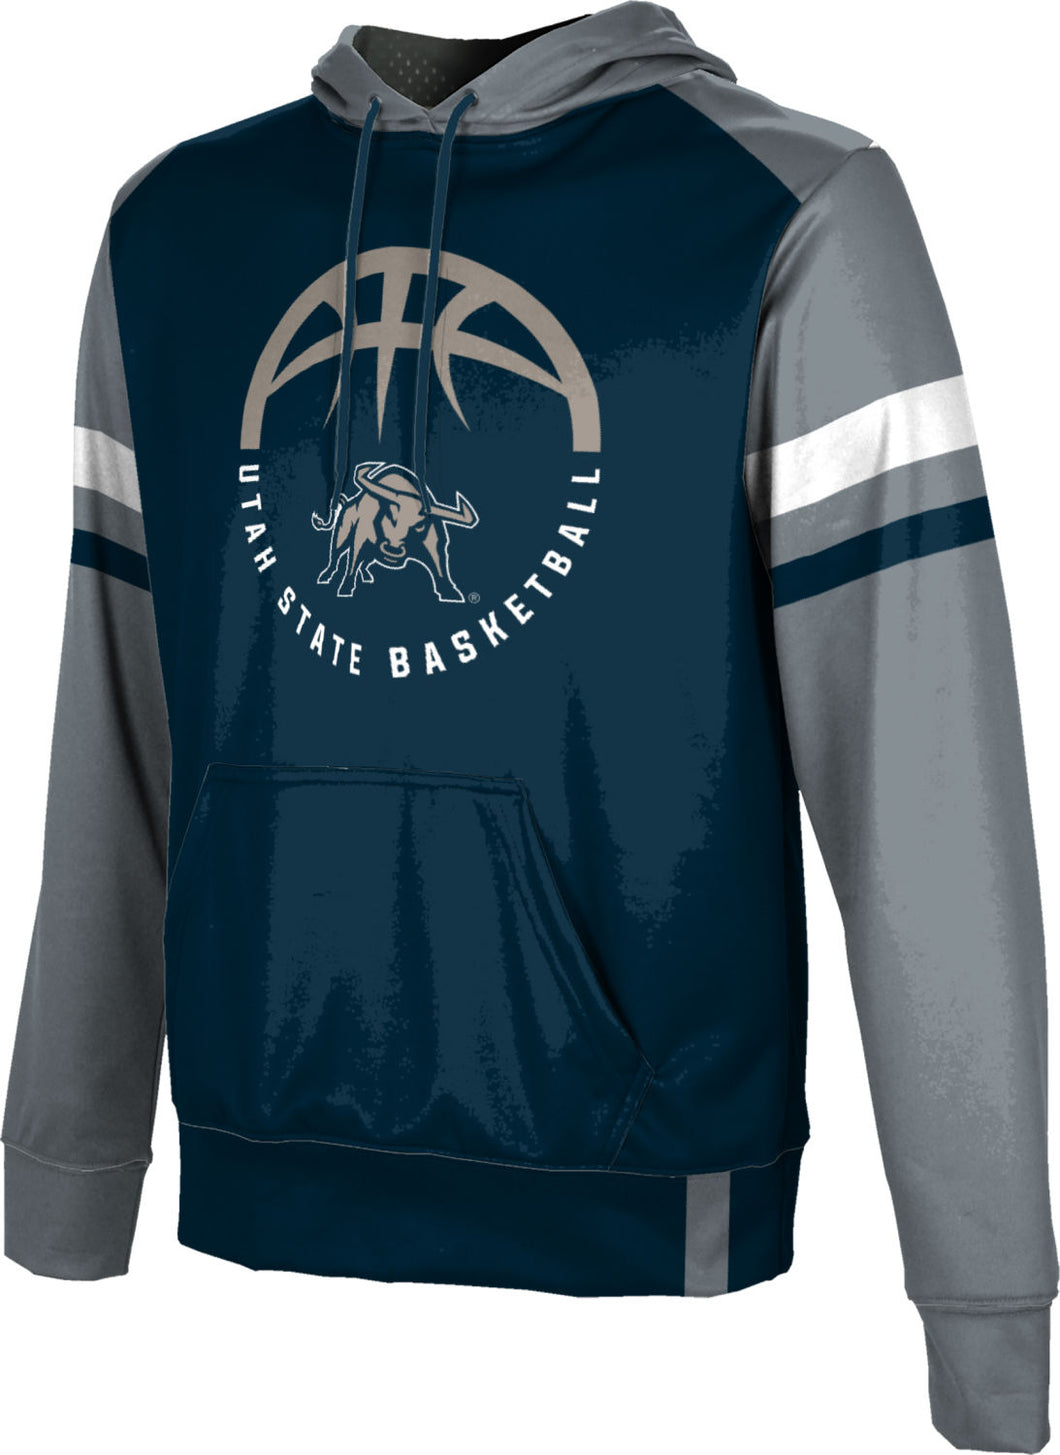 Utah State University: Men's Basketball Pullover Hoodie - Old School